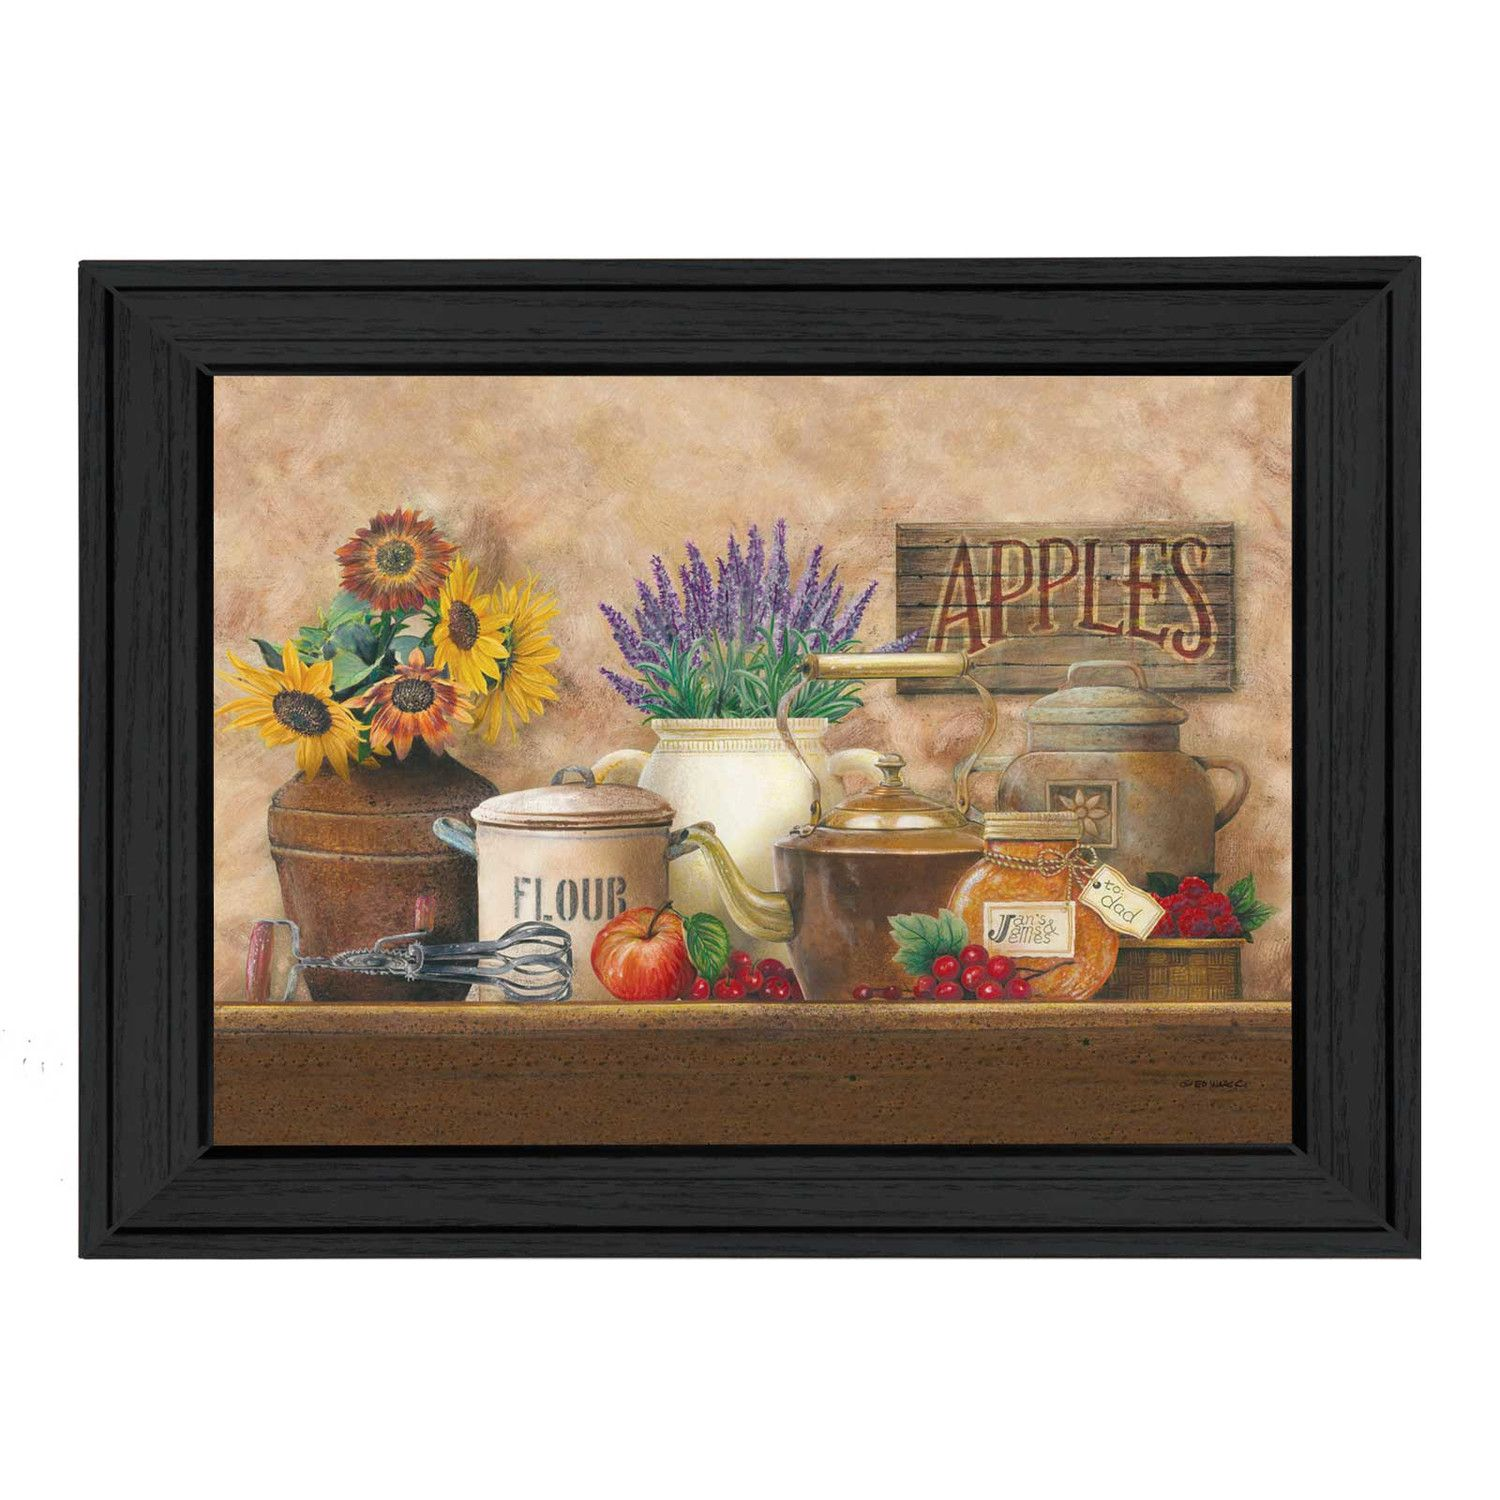 Antique-Kitchen-Ed-Wargo-Framed-Painting-Print.jpg (1500×1500)